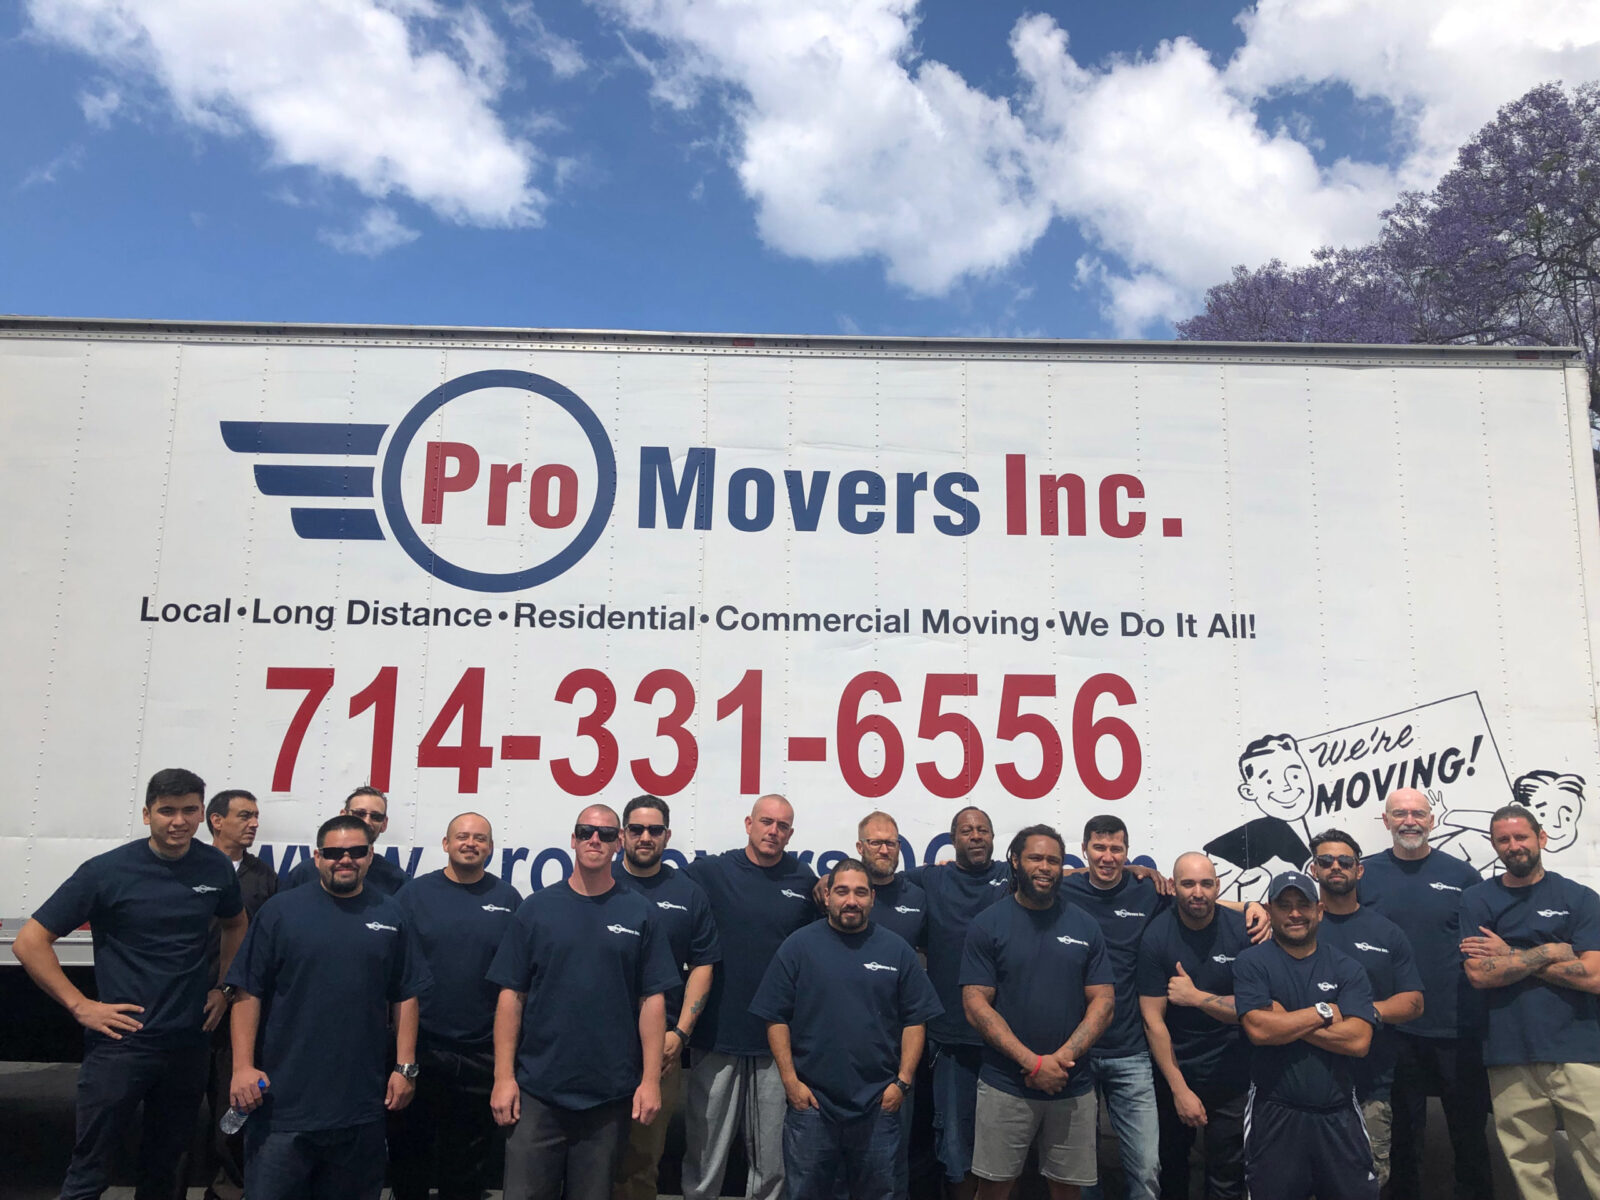 Here is our team of local movers in Fountain Valley.